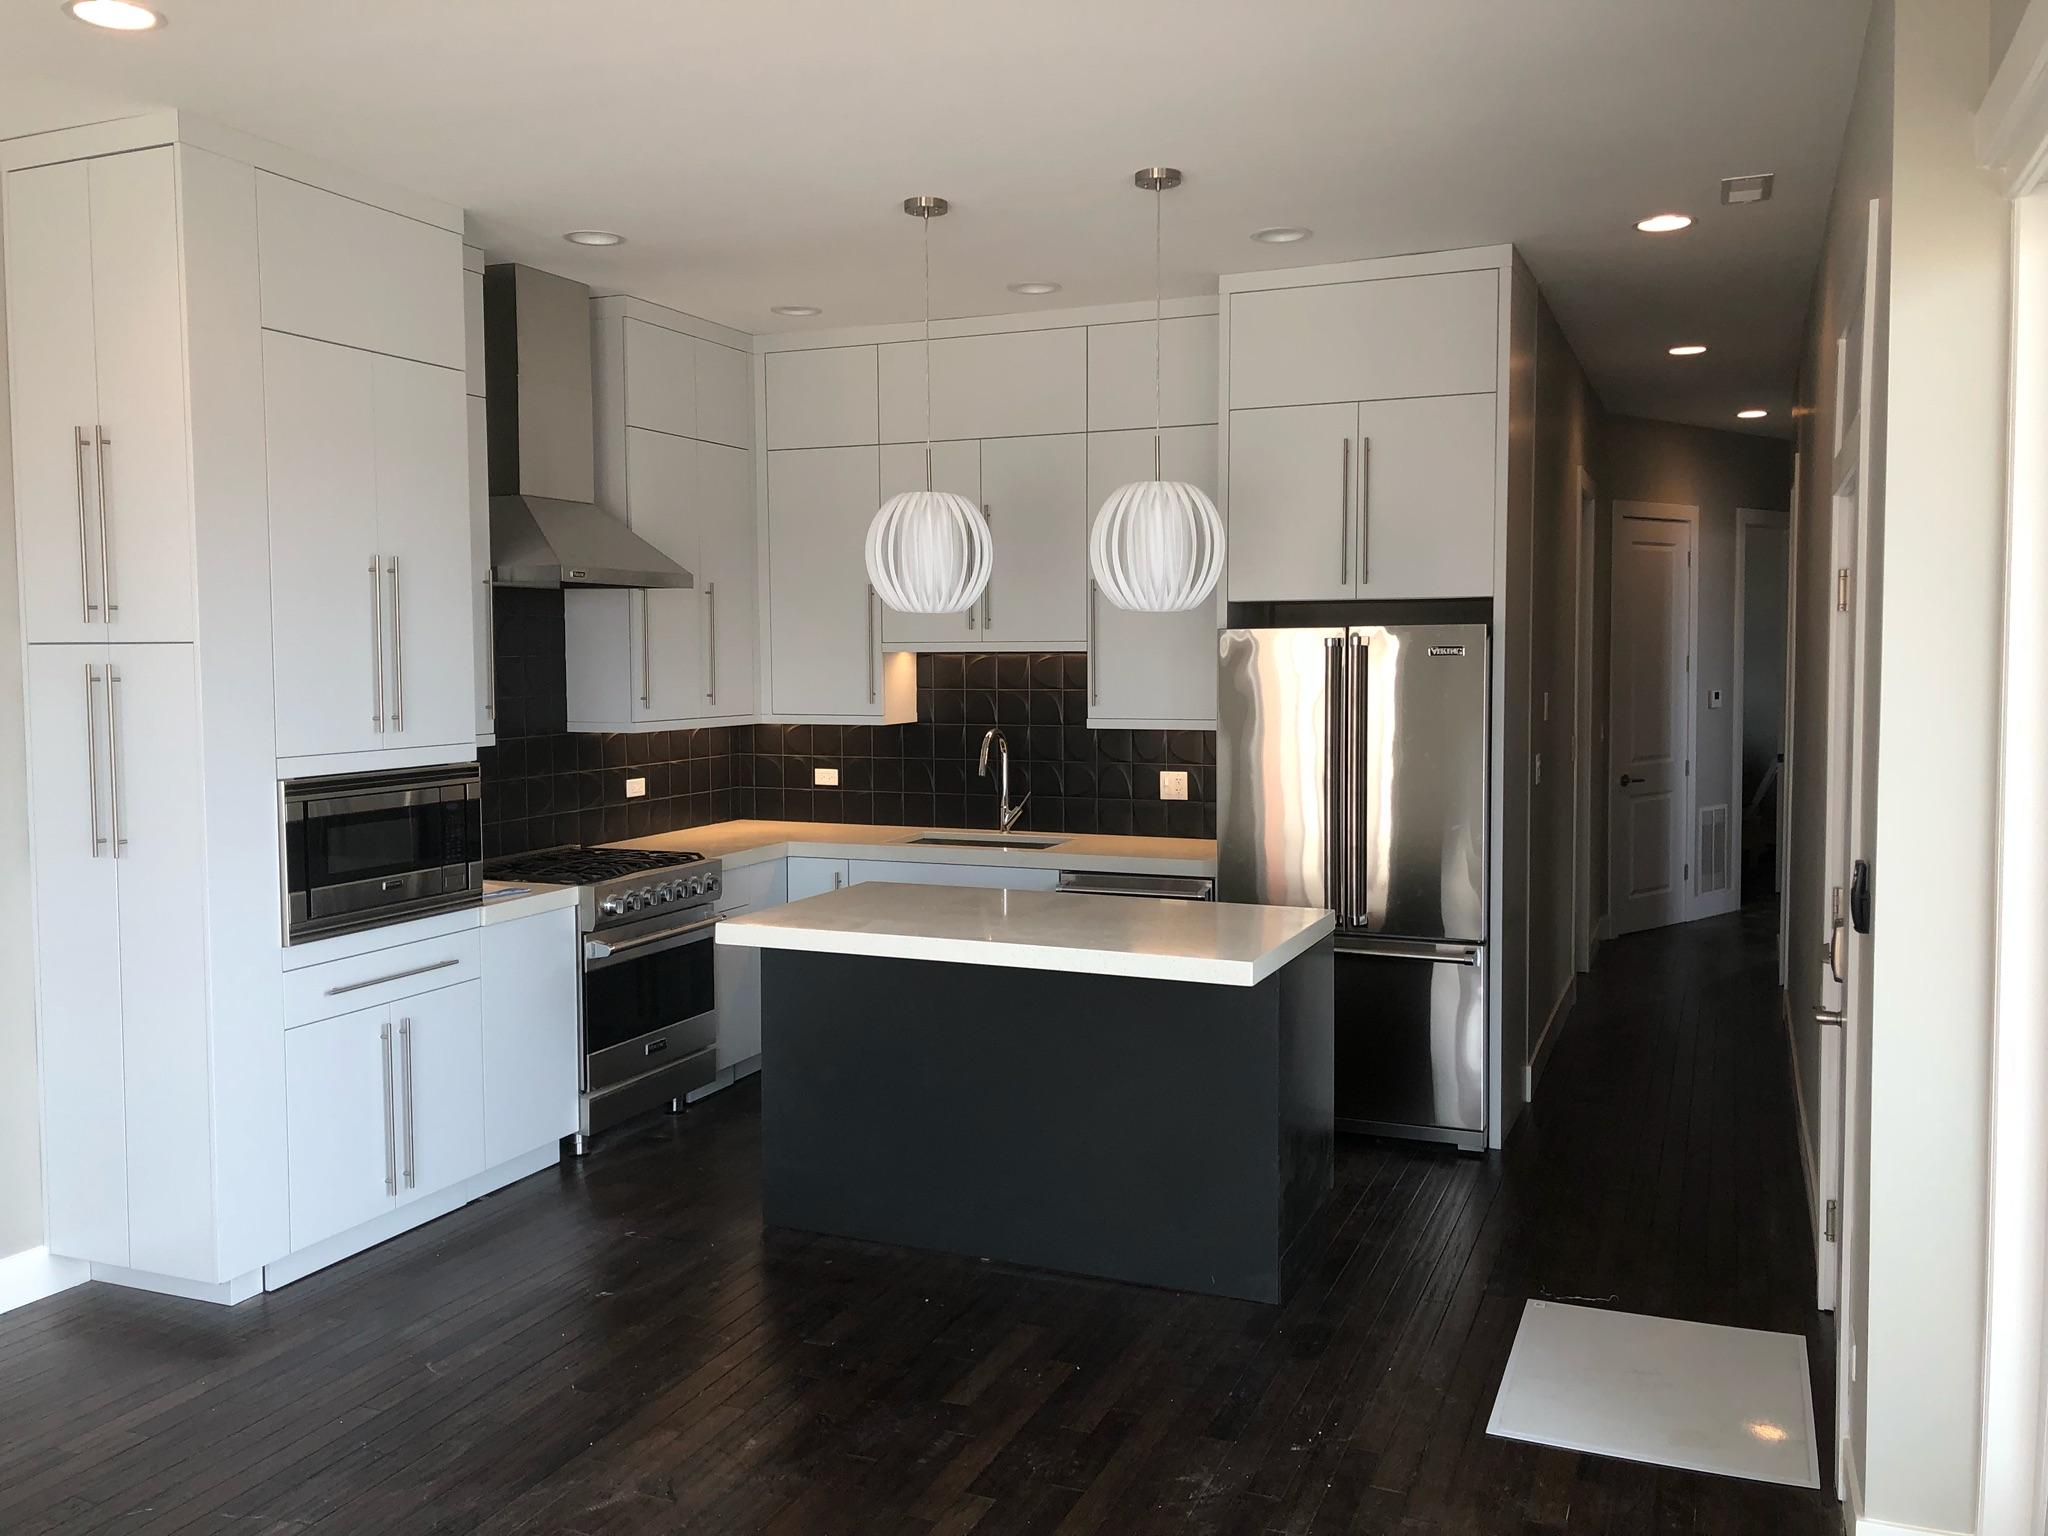 kitchen remodel in lake forest, Illinois - Platinum Touch Industries